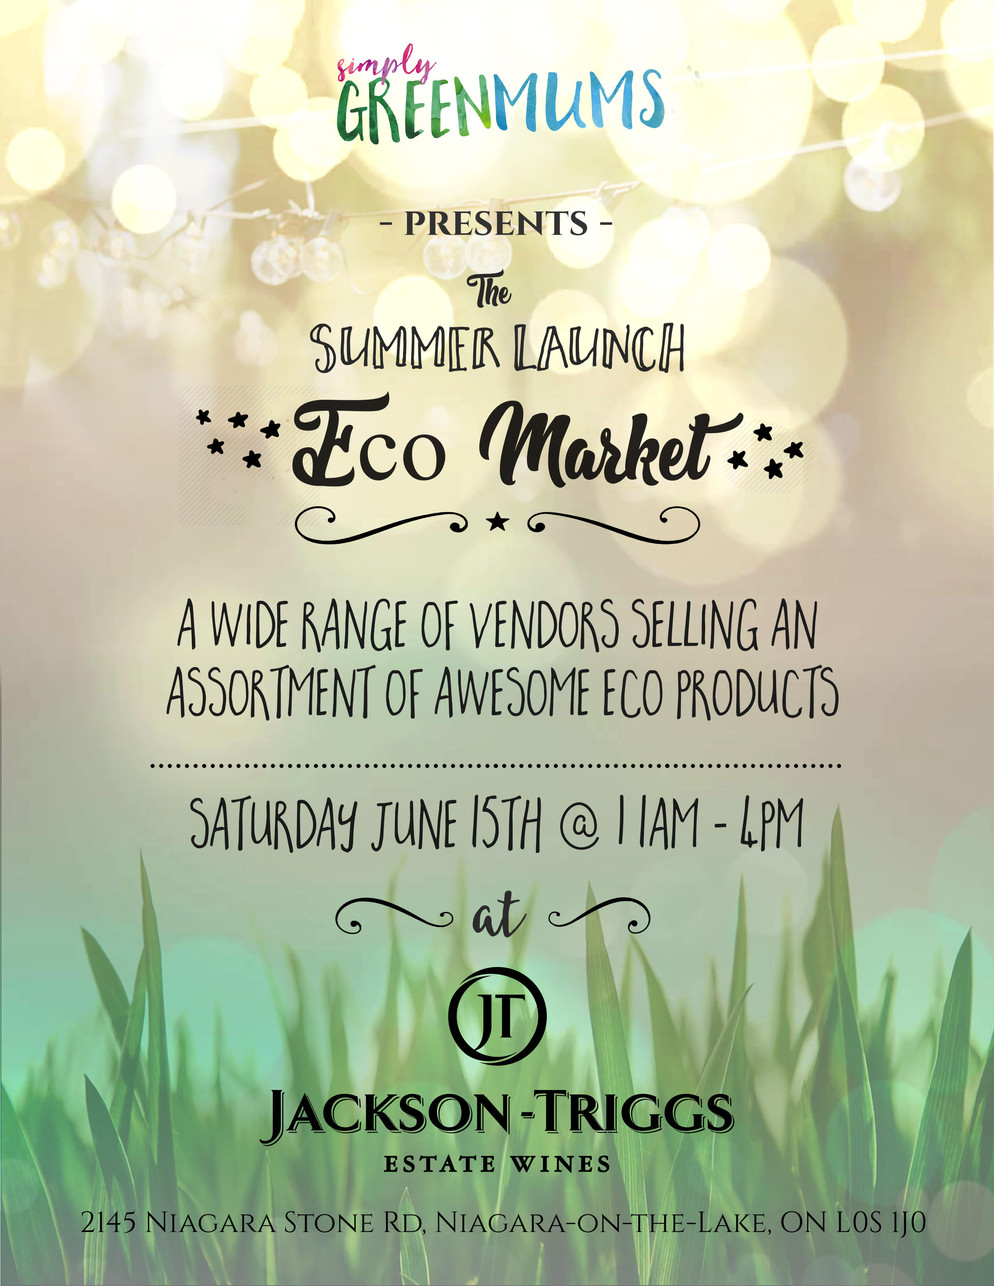 Summer Launch Eco Market - FREE